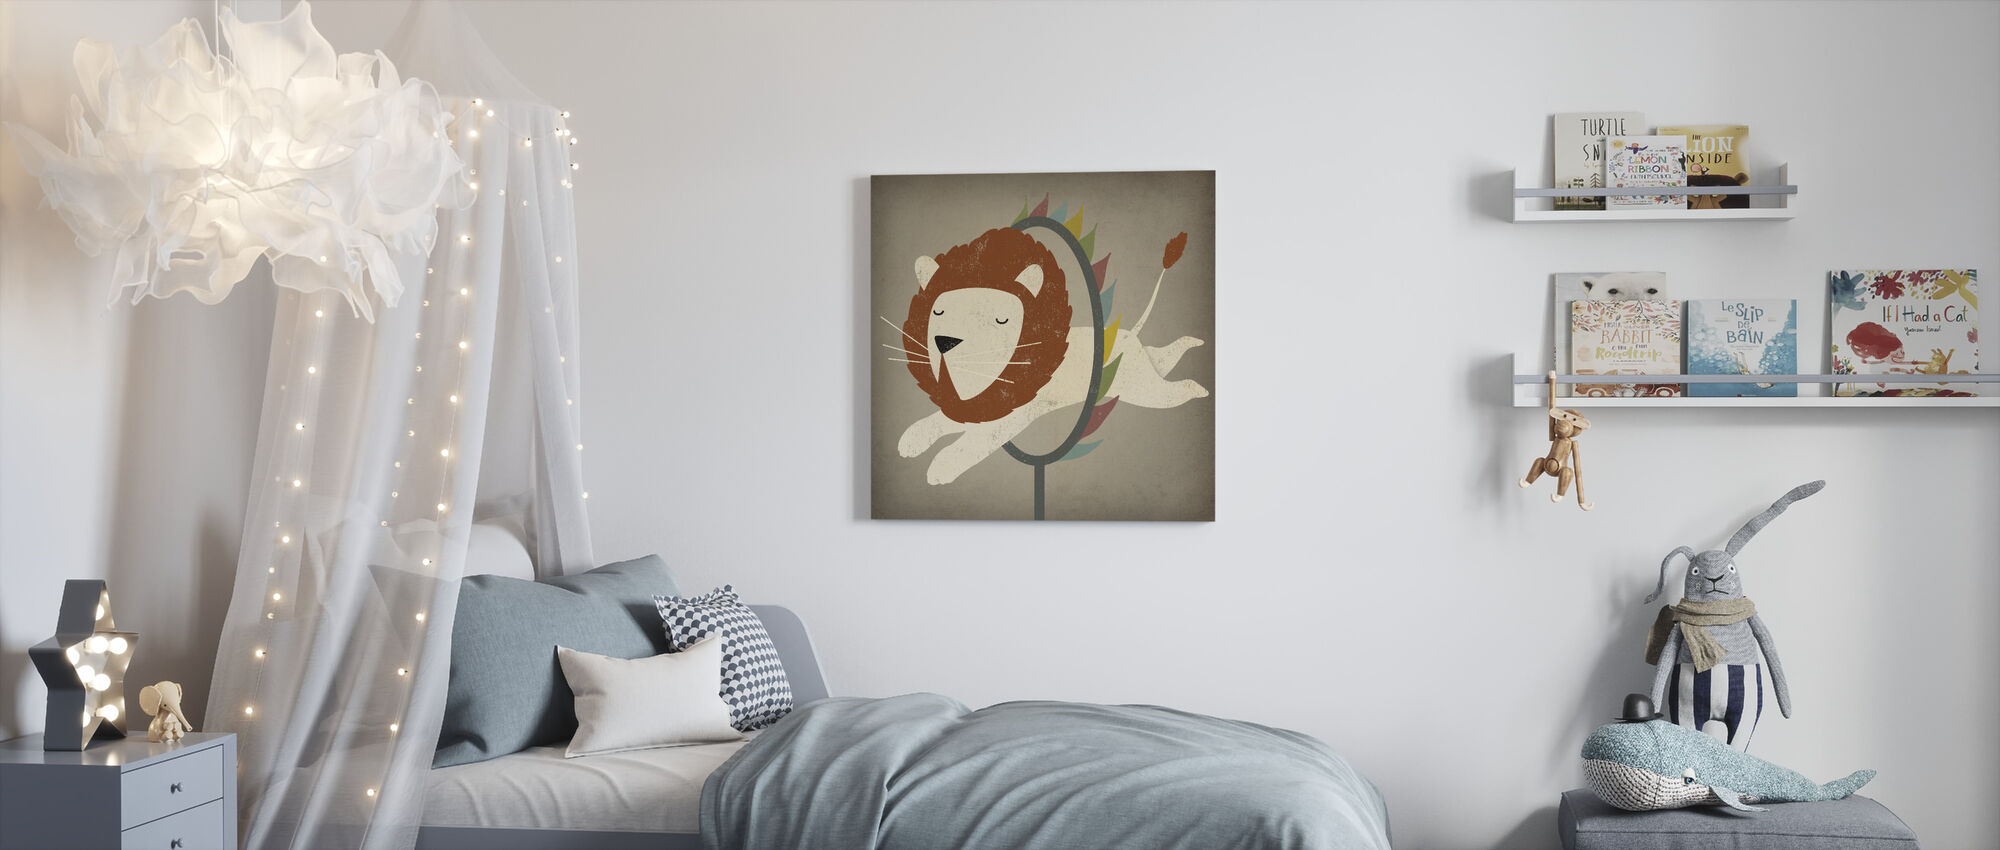 Circus Lion - Canvas print - Kids Room